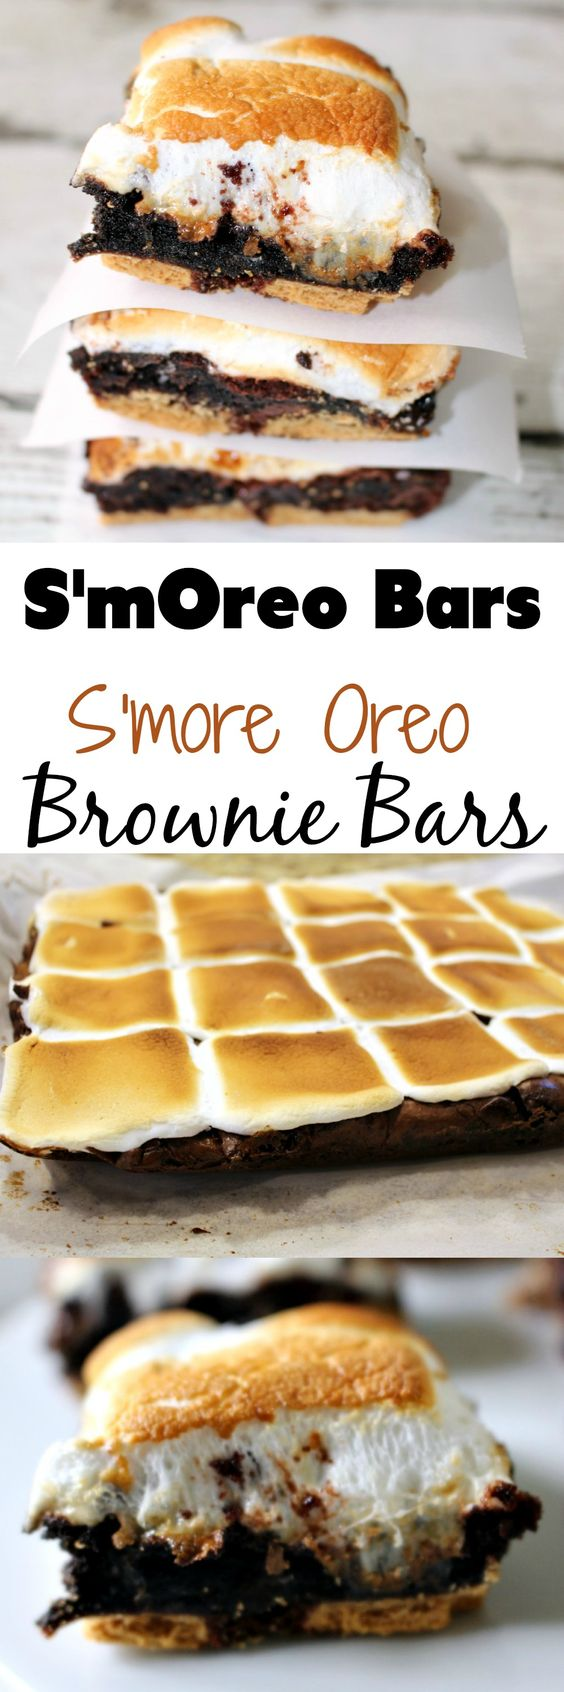 S'mOreos!!! S'more Oreo Brownie Bars - OMG this happened and it was AWESOME!!!!: